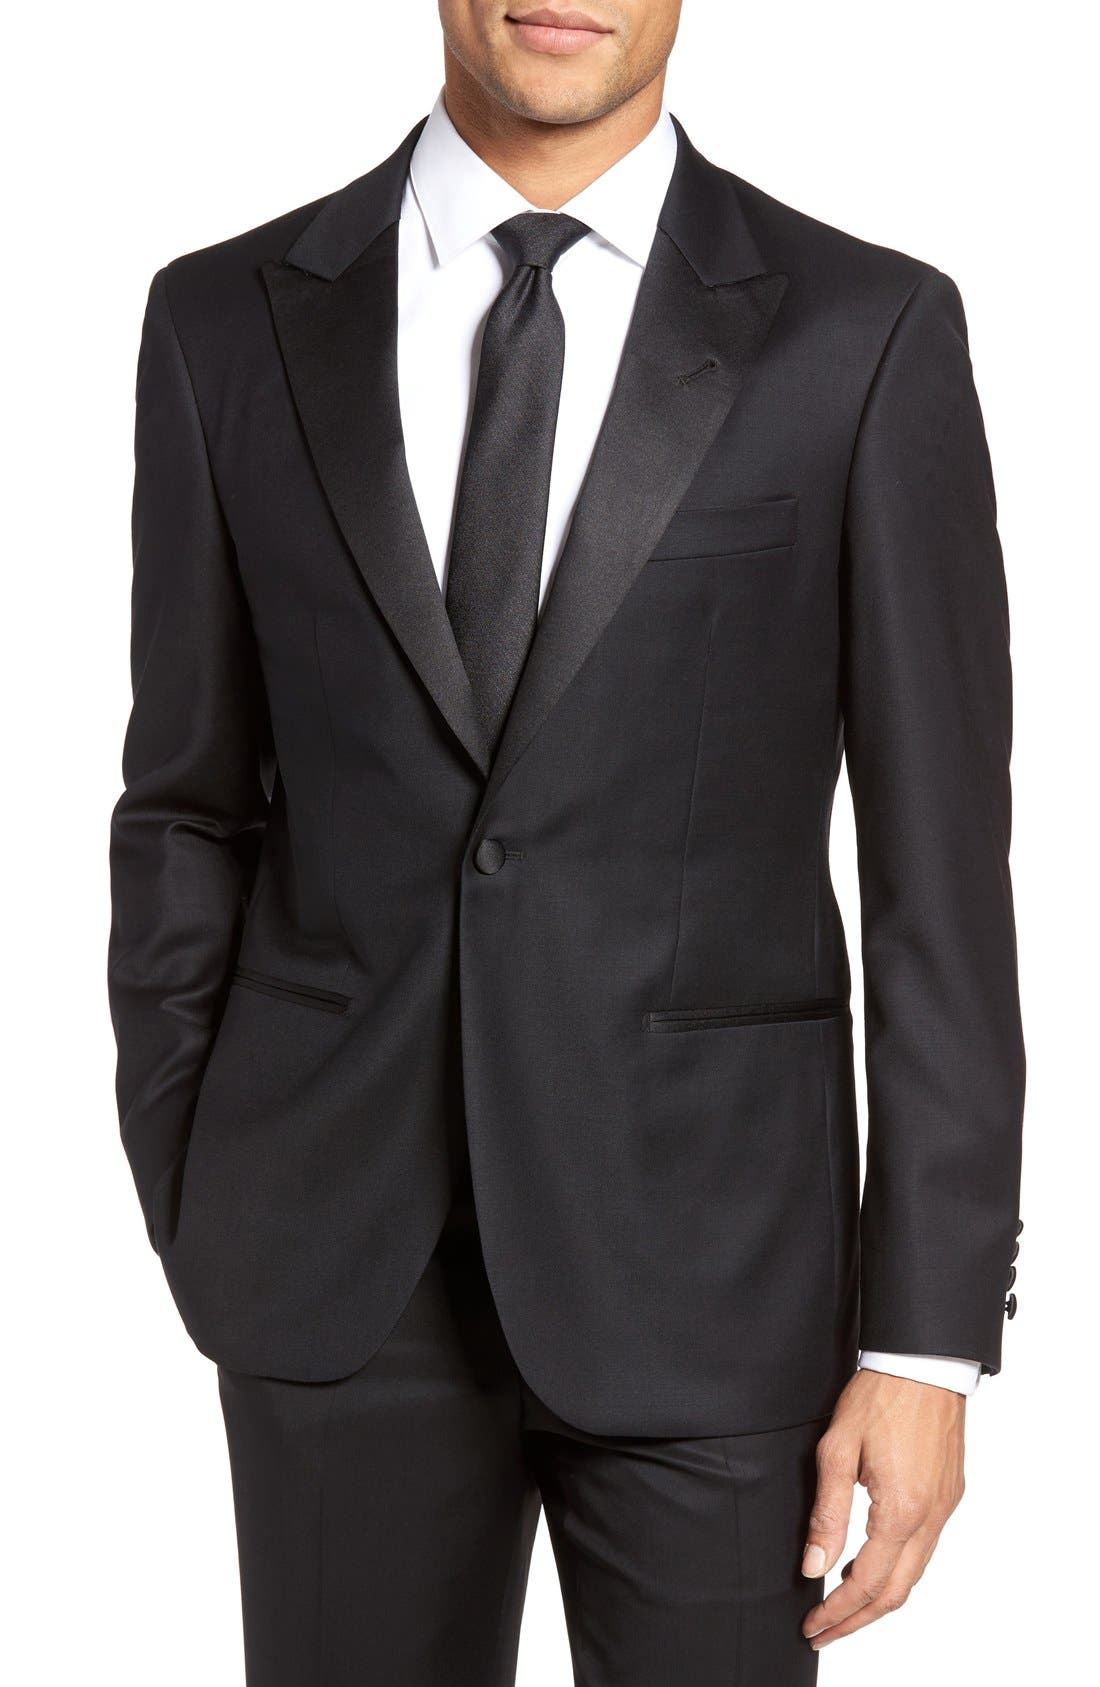 Aston Trim Fit Wool Dinner Jacket,                             Main thumbnail 1, color,                             001